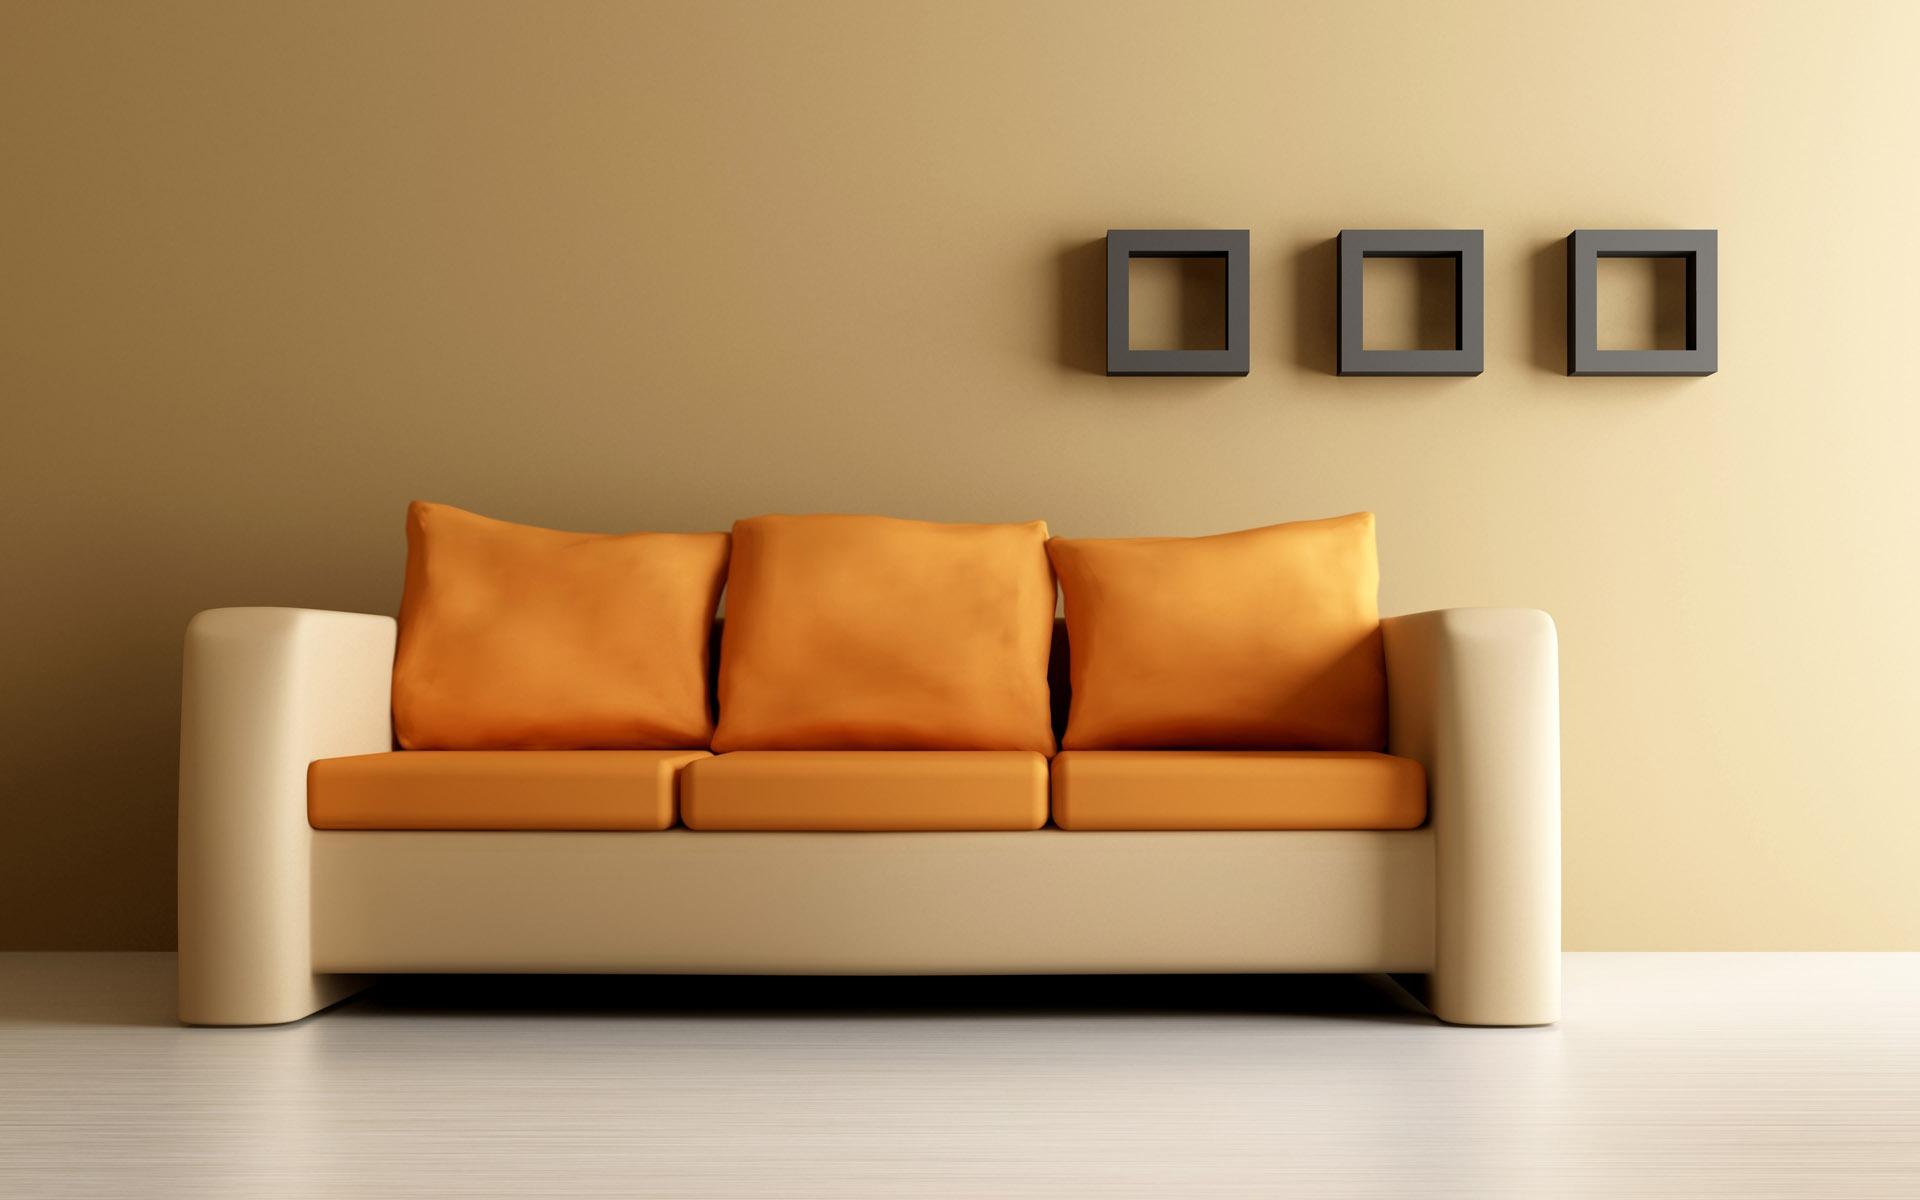 Wall Paper Interior Design b wallpaper interior design b eurekahouse co Orange Couch Wallpaper Interior Design Other